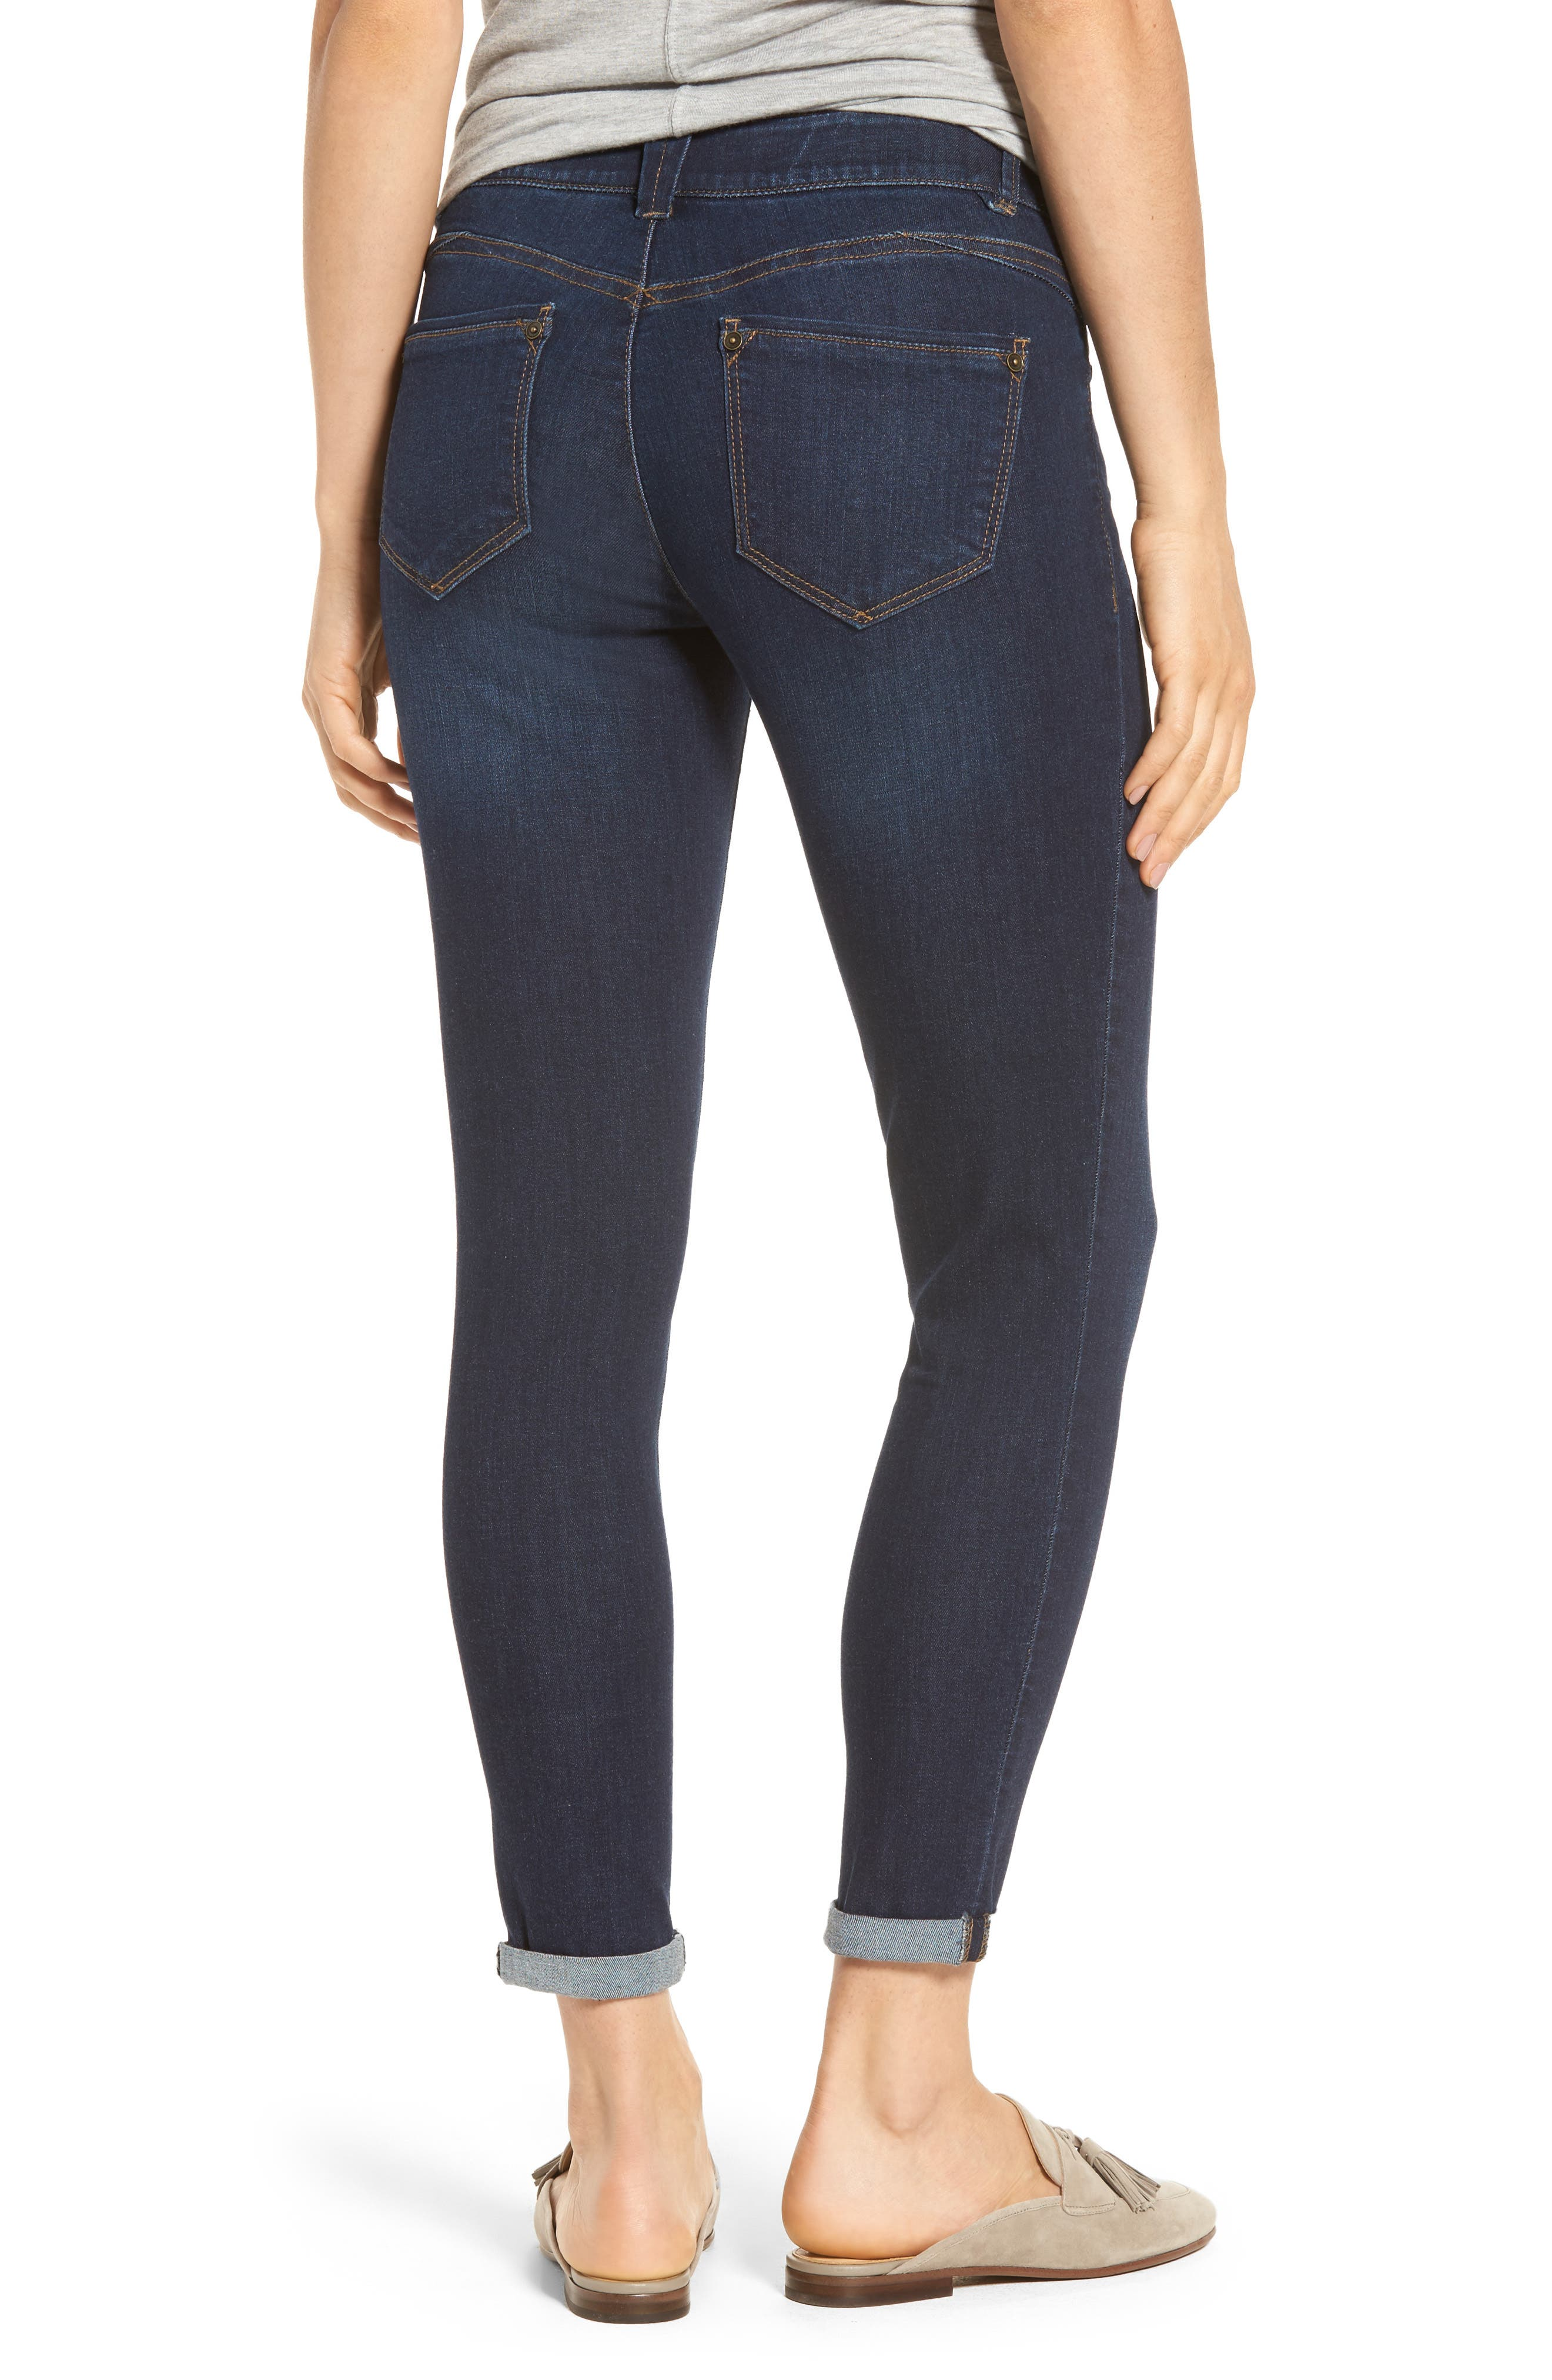 Ab-solution Boyfriend Ankle Jeans,                             Alternate thumbnail 2, color,                             402